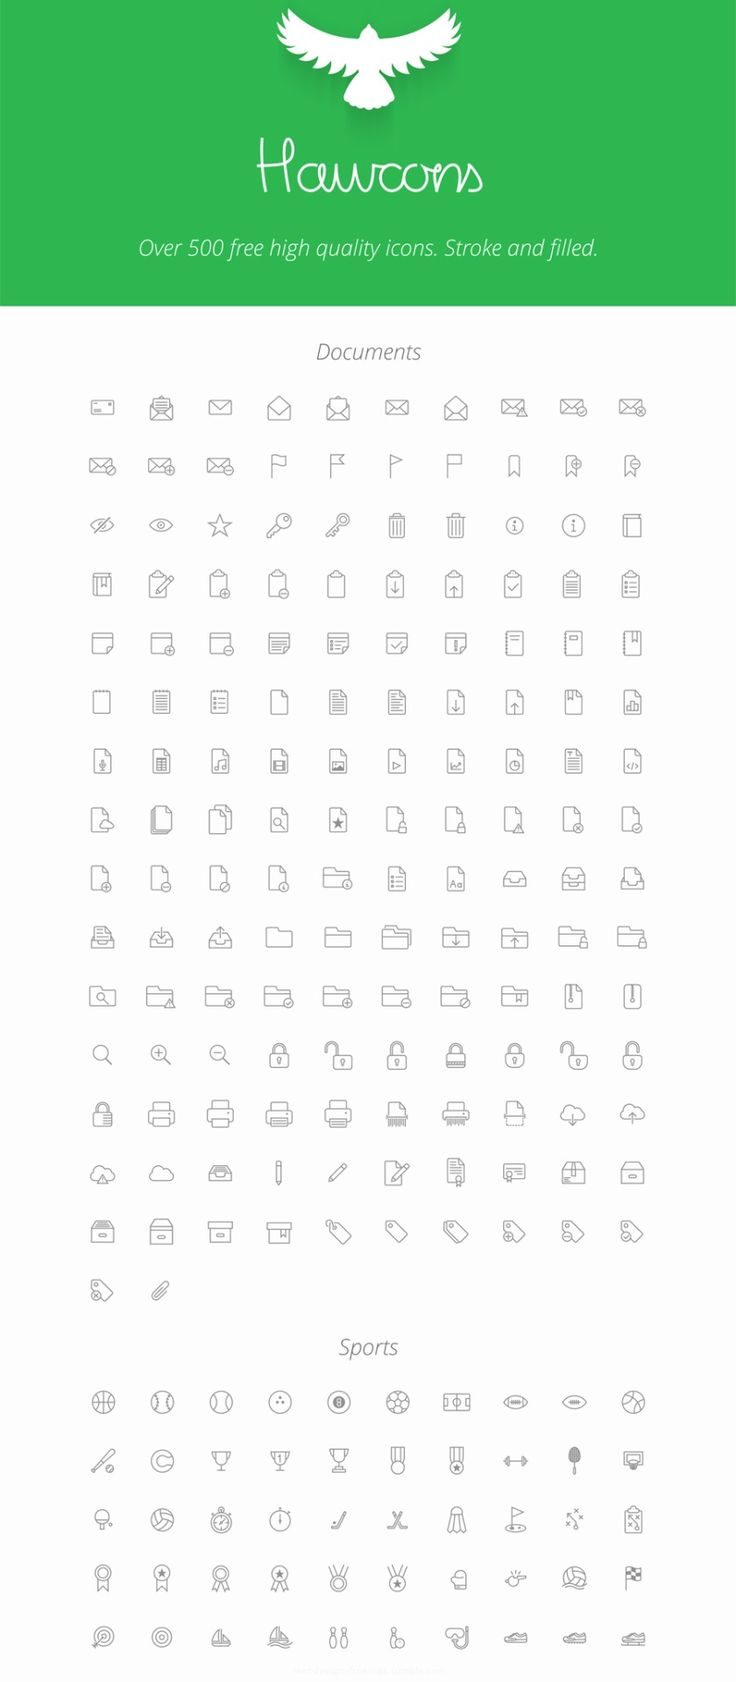 Hawcons - 500 Free Stroked and Filled Icons